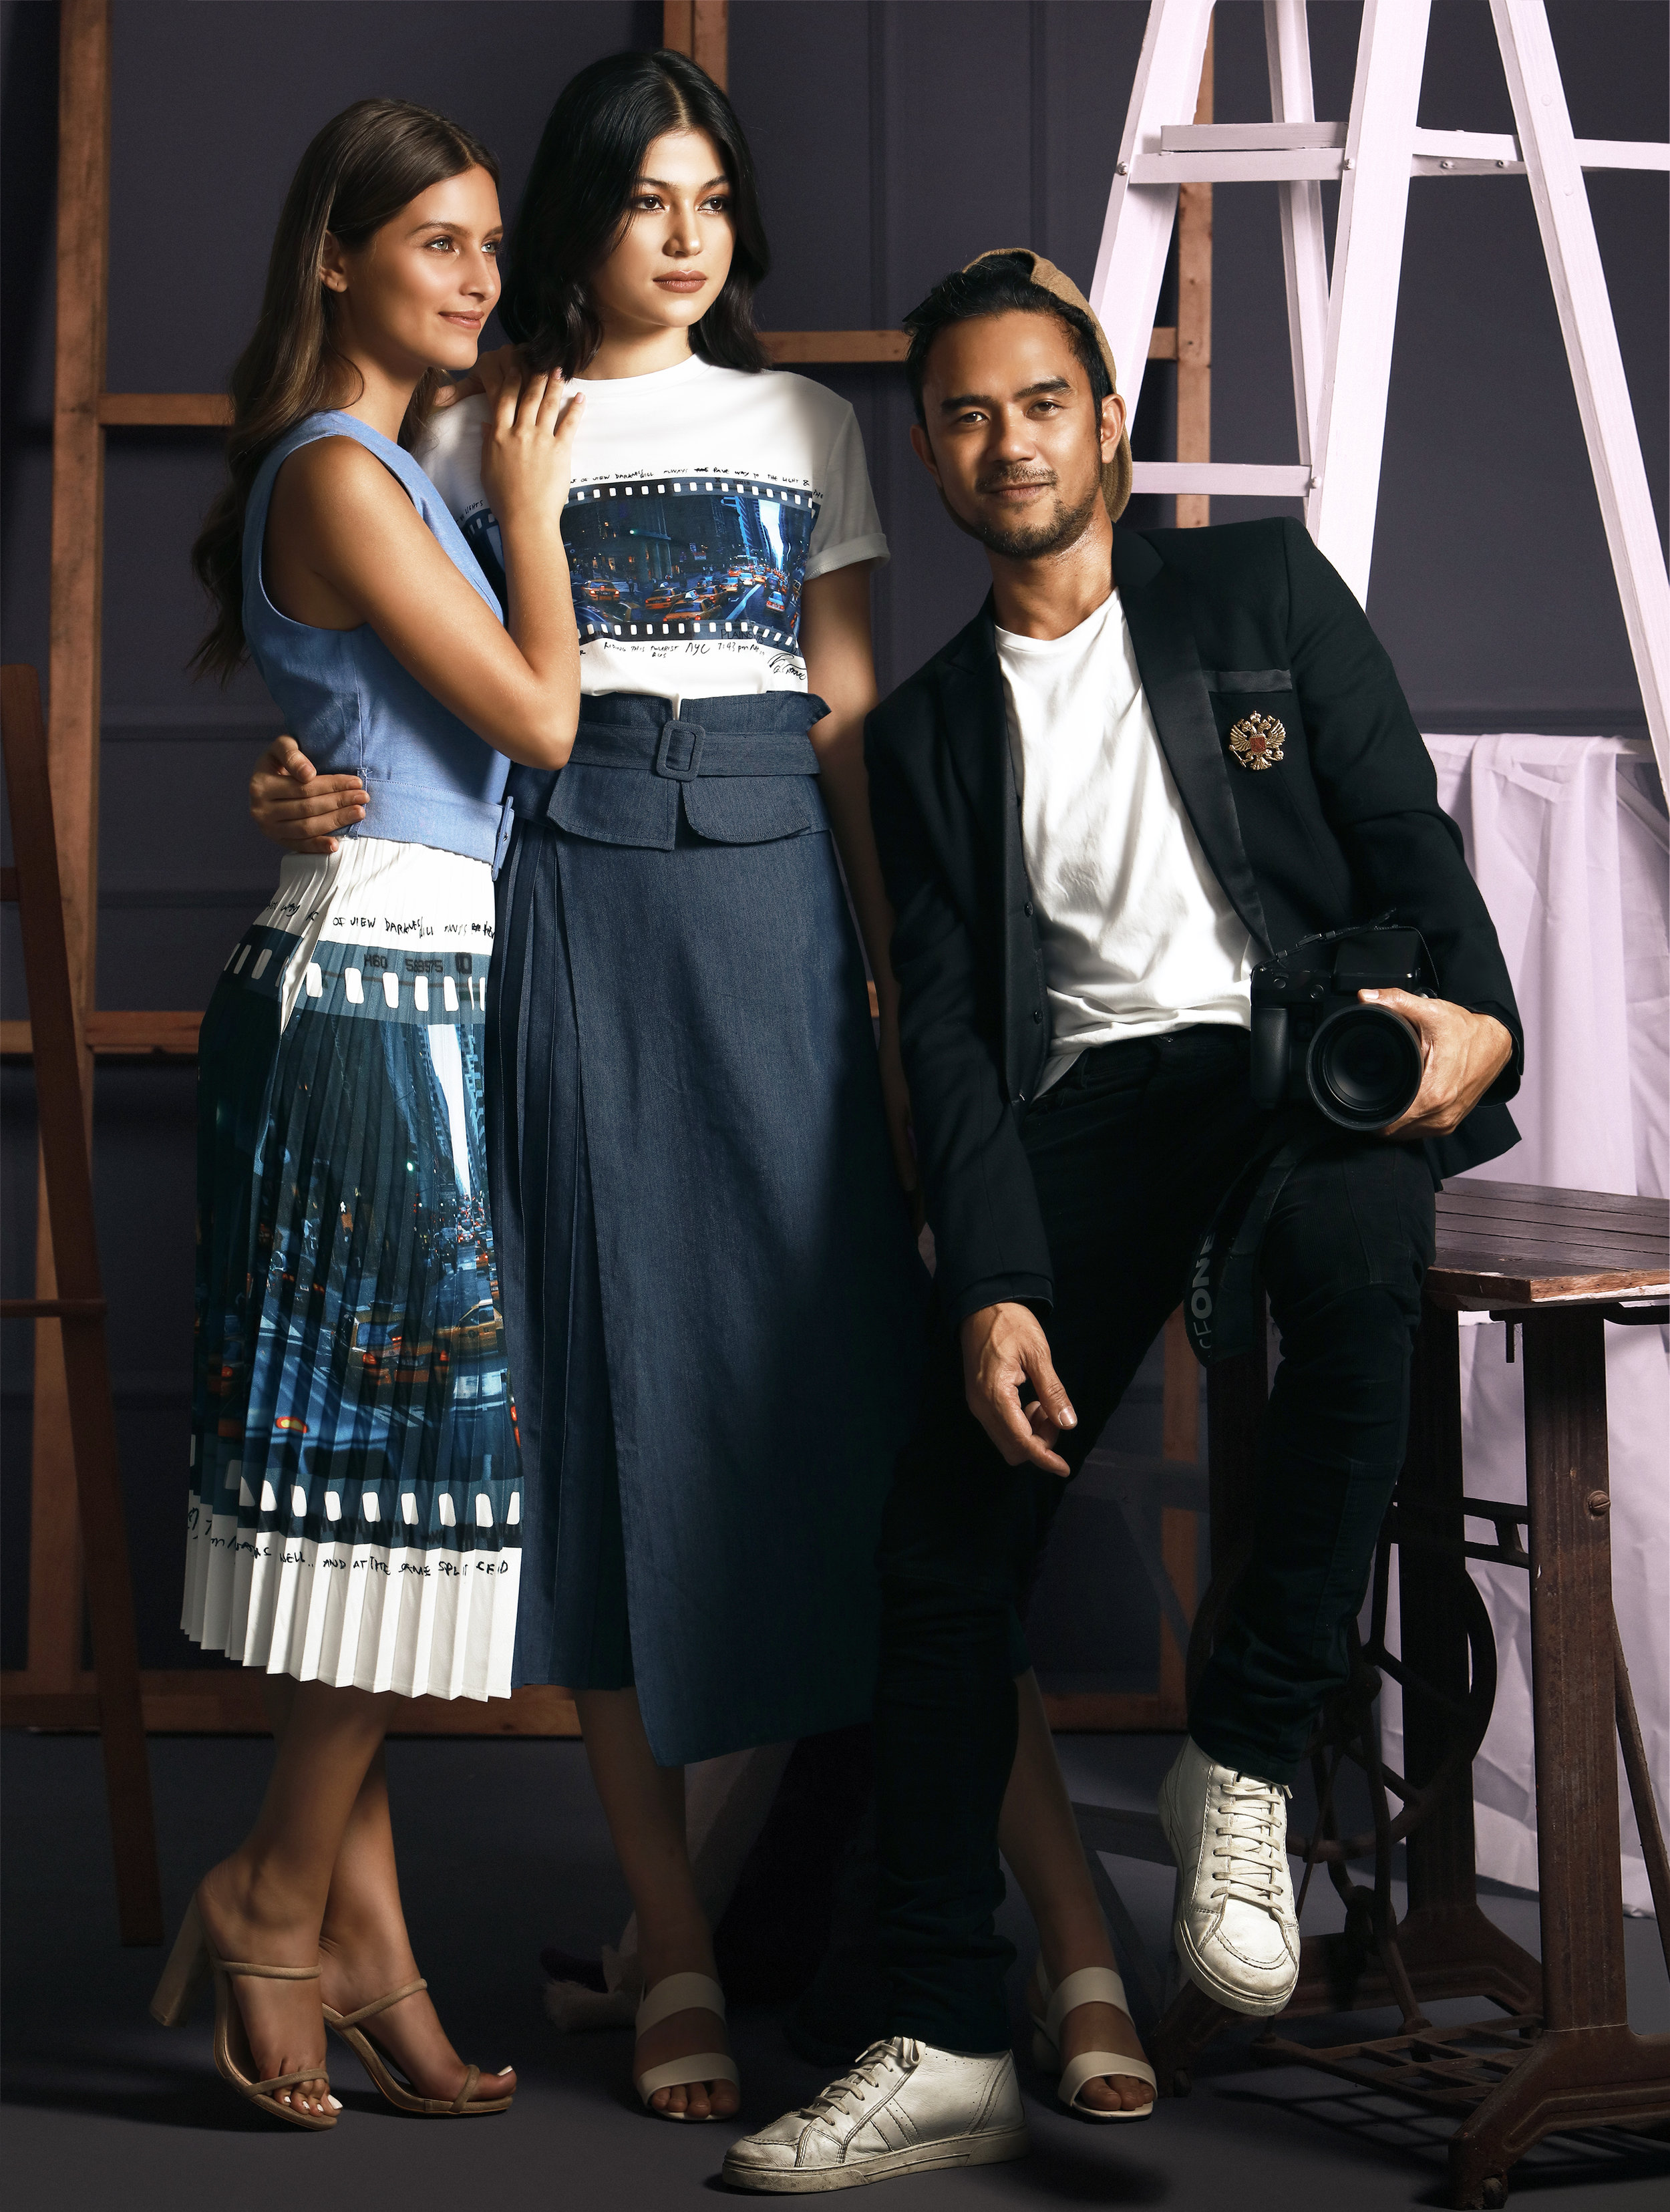 Mark Nicdao showcases a digital print of the city that never sleeps in the New York dress (P2998) and Manhattan shirt and culottes set (P2998).